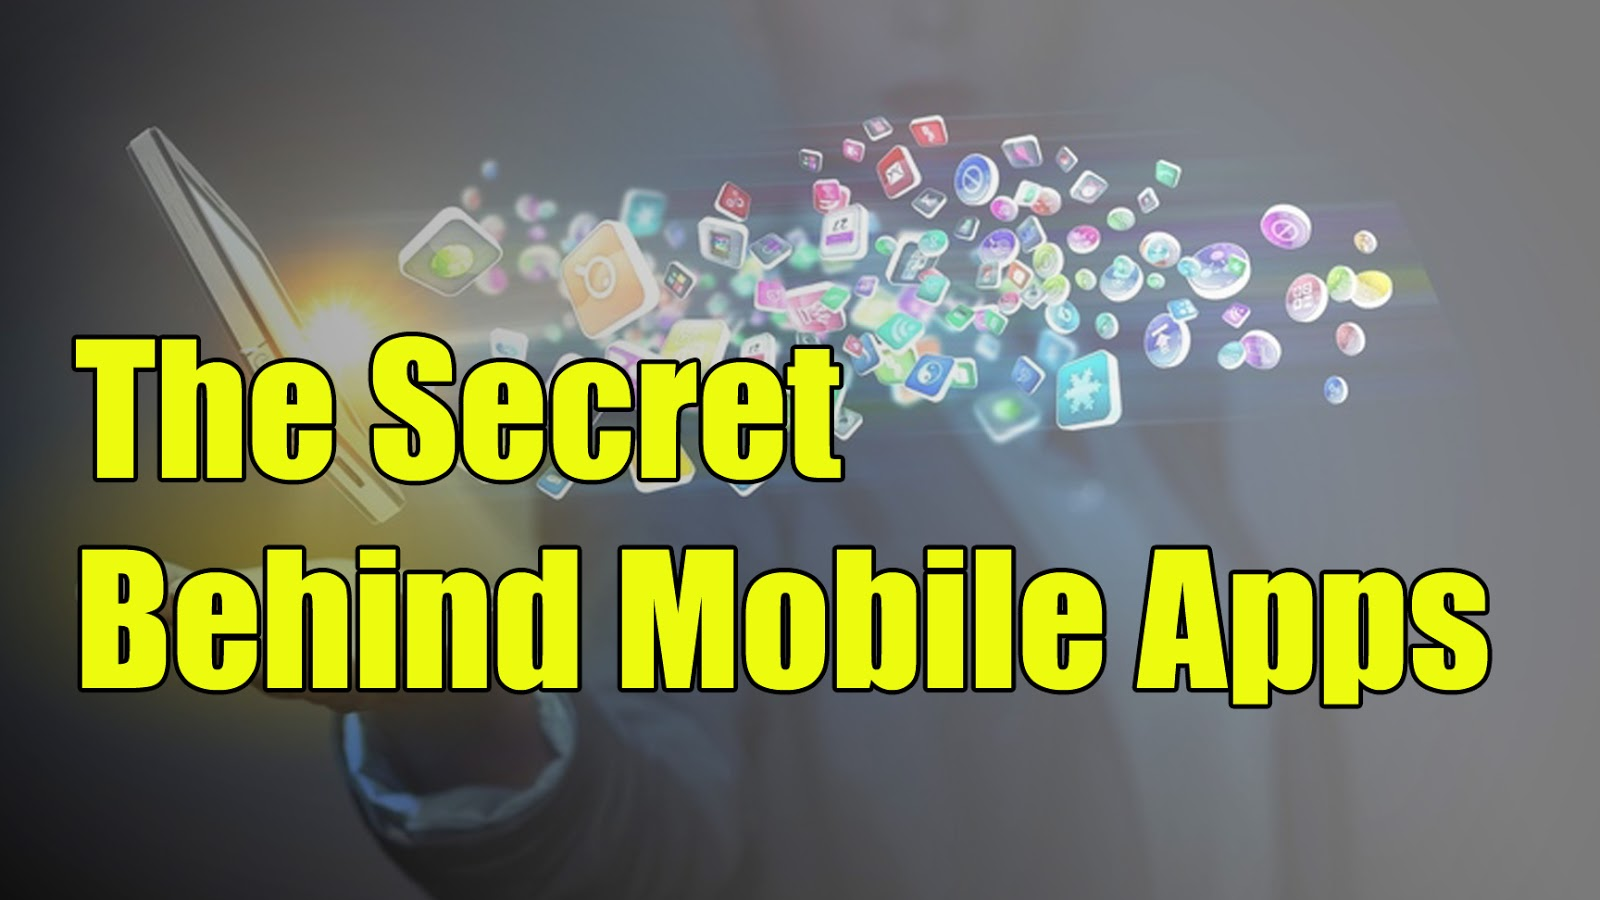 The Secret Behind Mobile Apps